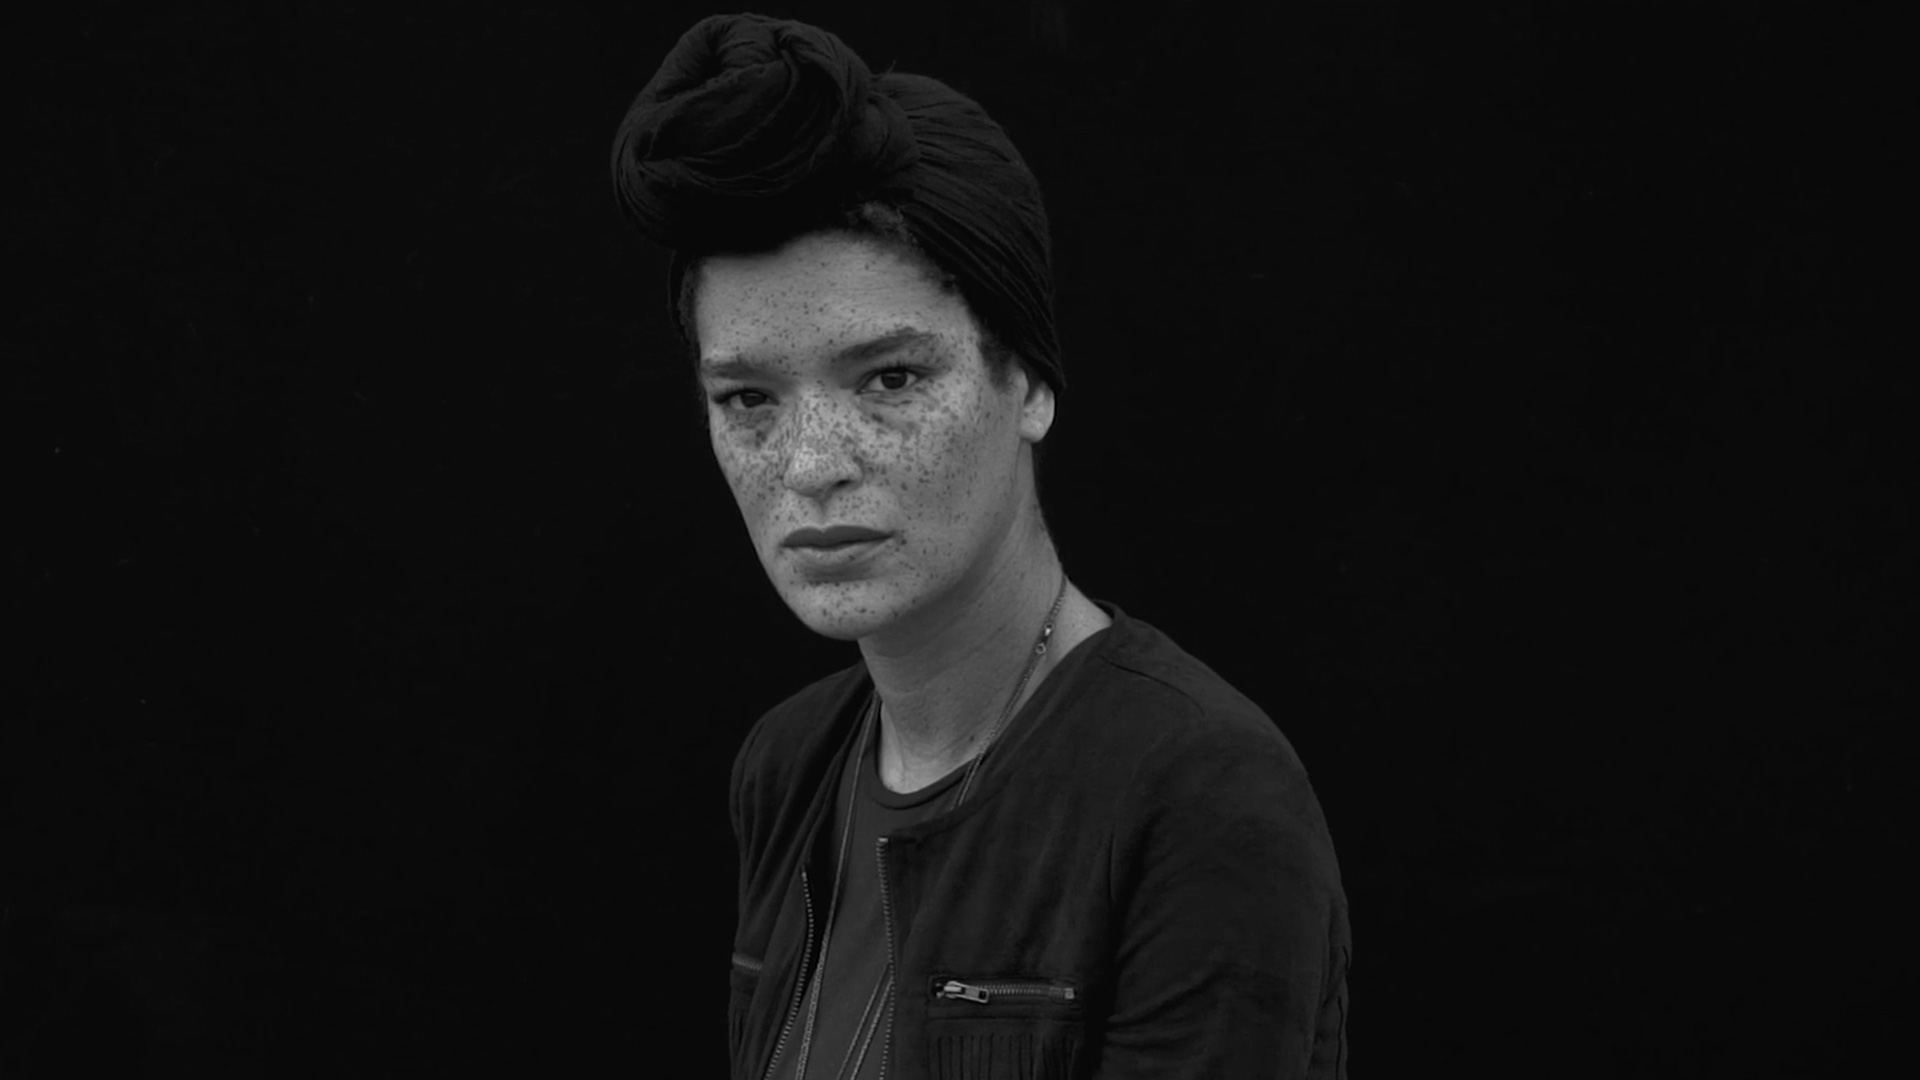 Black and white image of a woman with freckles gazing into the camera